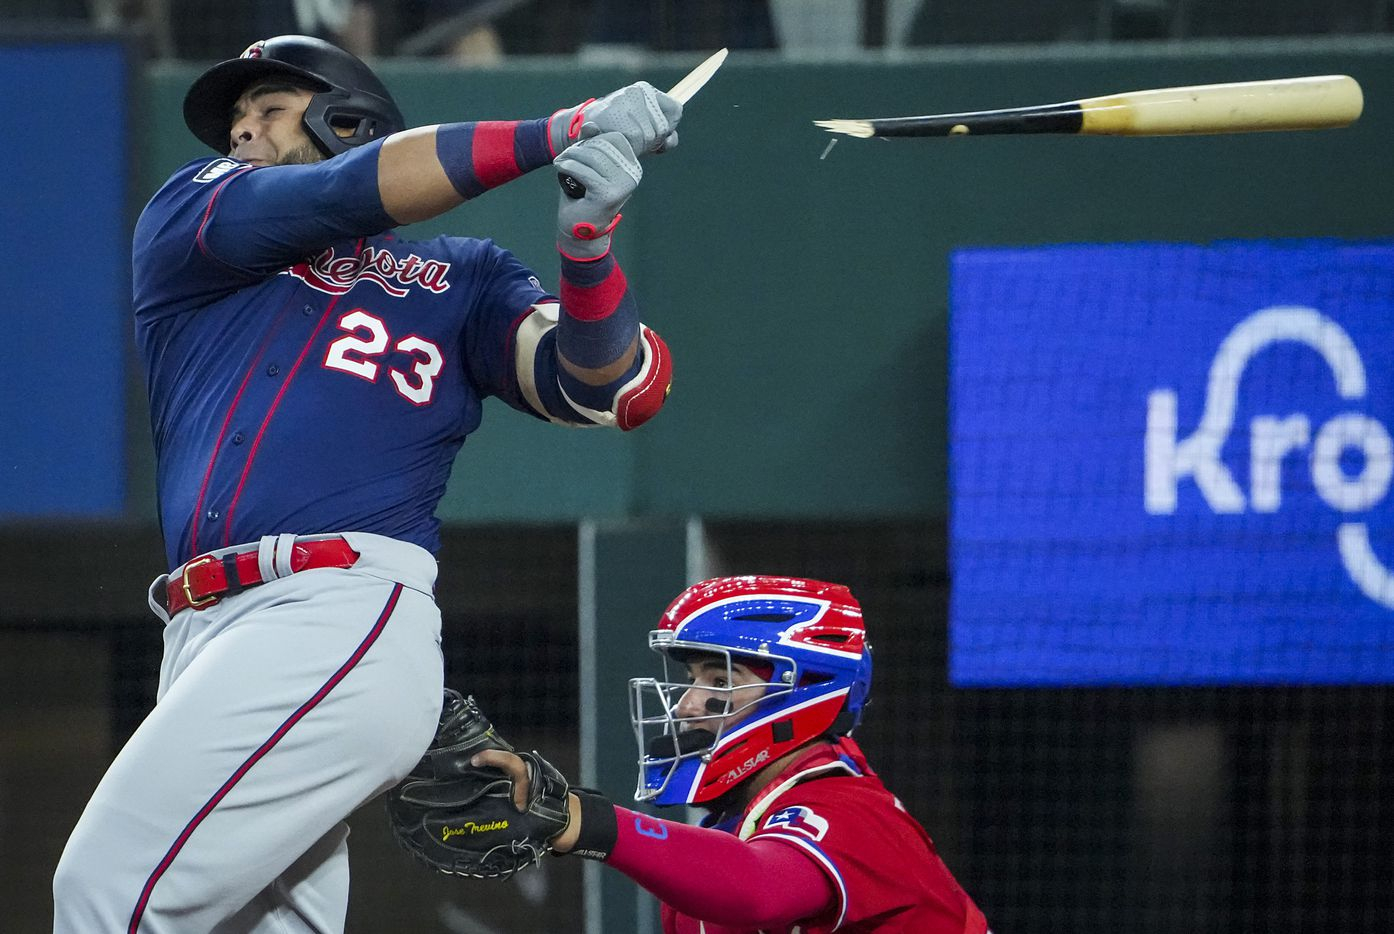 Minnesota Twins designated hitter Nelson Cruz  breaks his bat on an RBI single as Texas Rangers catcher Jose Trevino works behind the plate during the first inning at Globe Life Field on Friday, June 18, 2021.